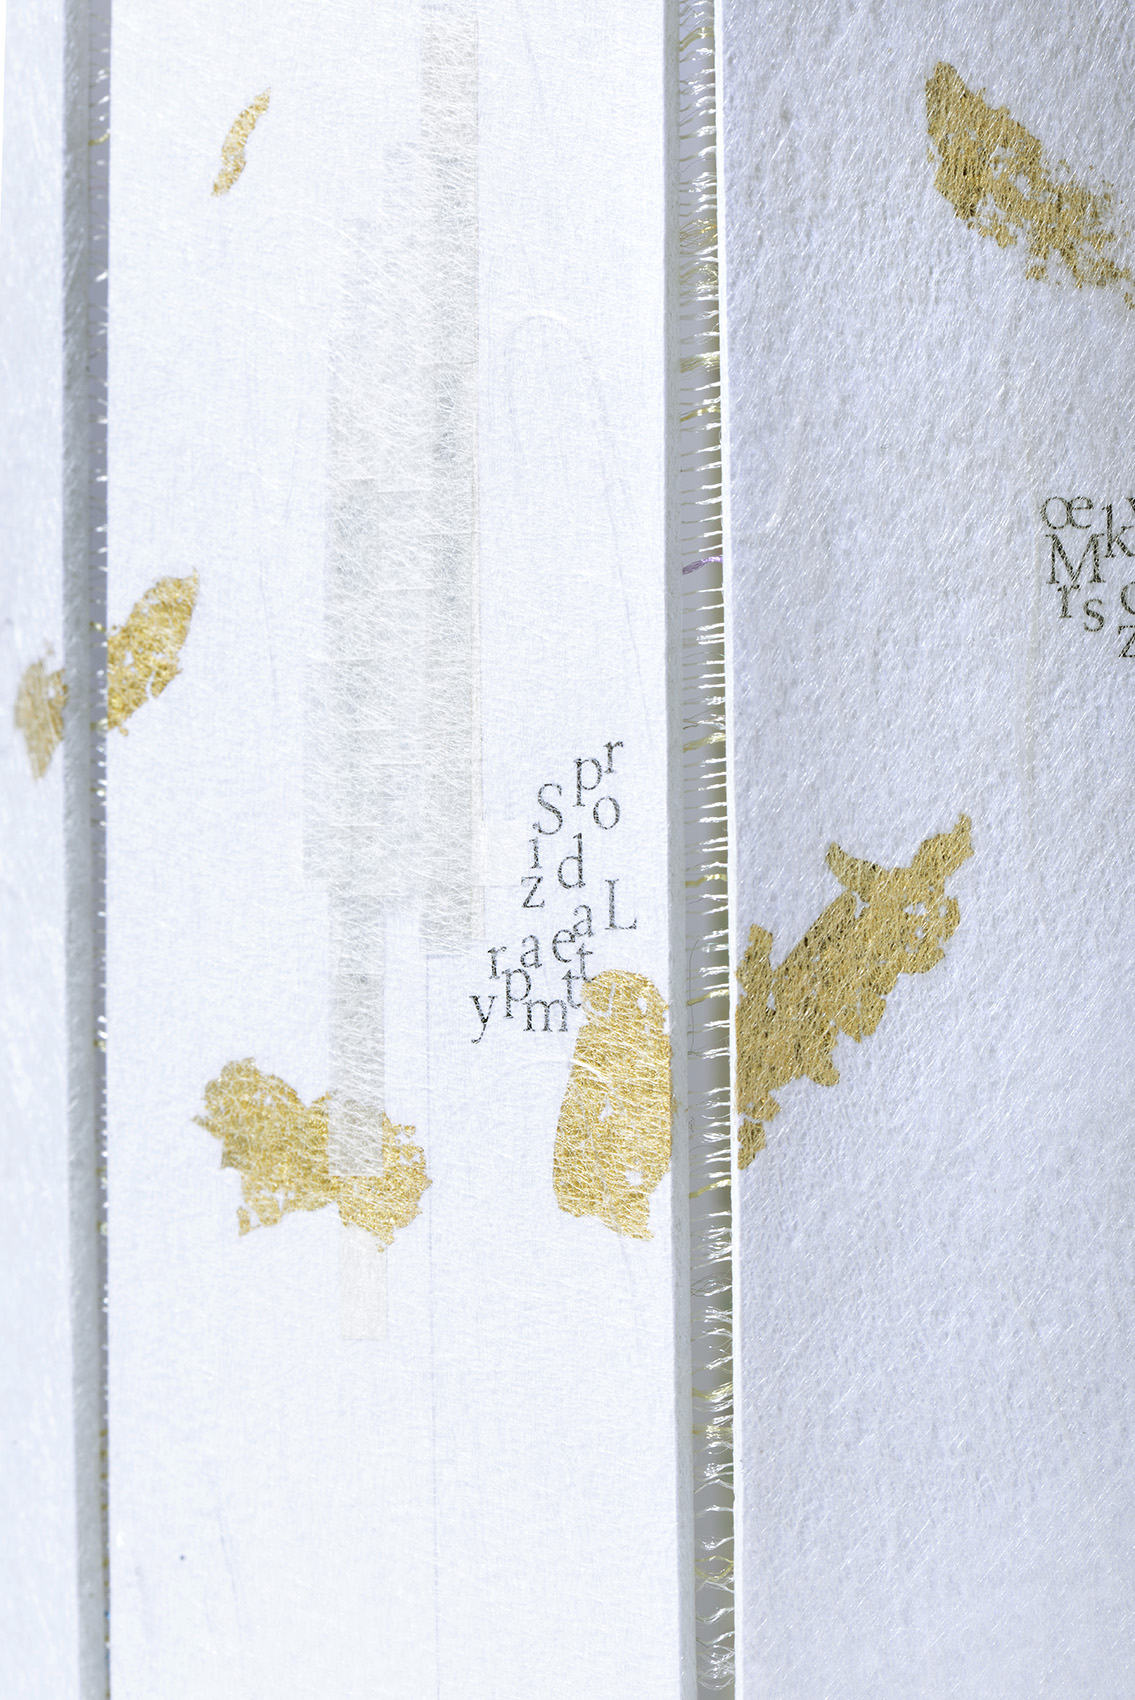 Tamara-Lise-Delicate-Paper-Works-Sogno_d'oro-Strictlypaper-Detail